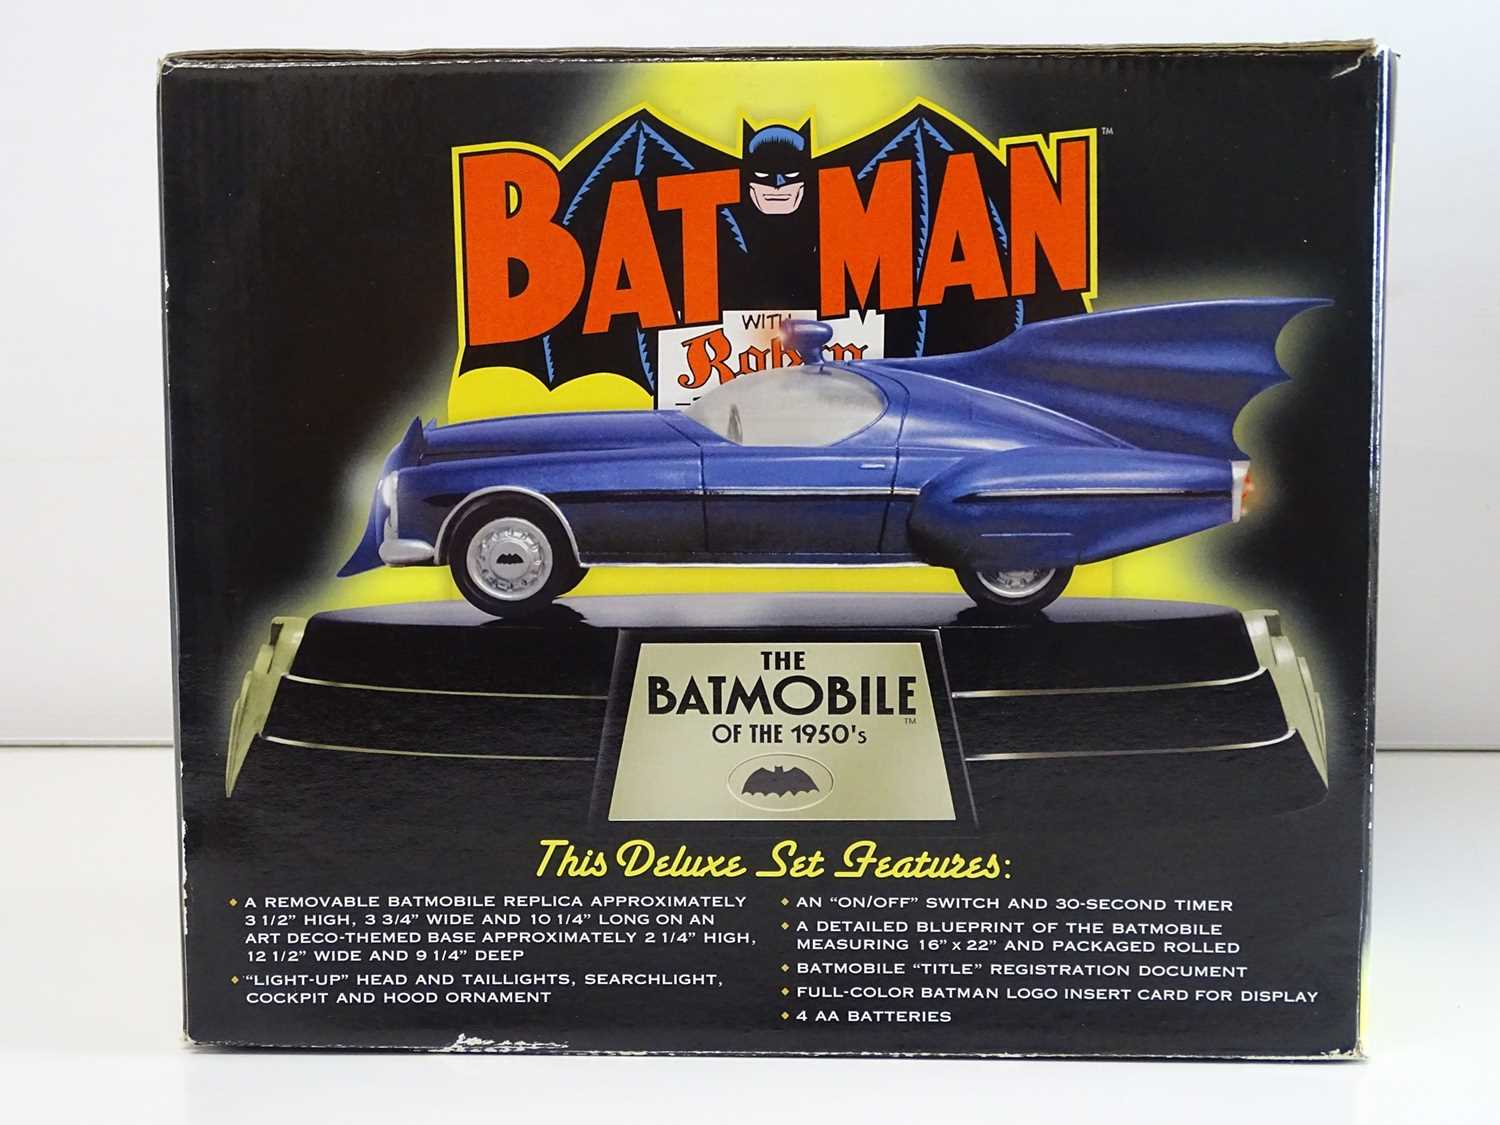 BATMAN: BATMOBILE REPLICA - 1950's EDITION - Limited Edition of 1,500 + Hand painted cold-cast - Image 4 of 5